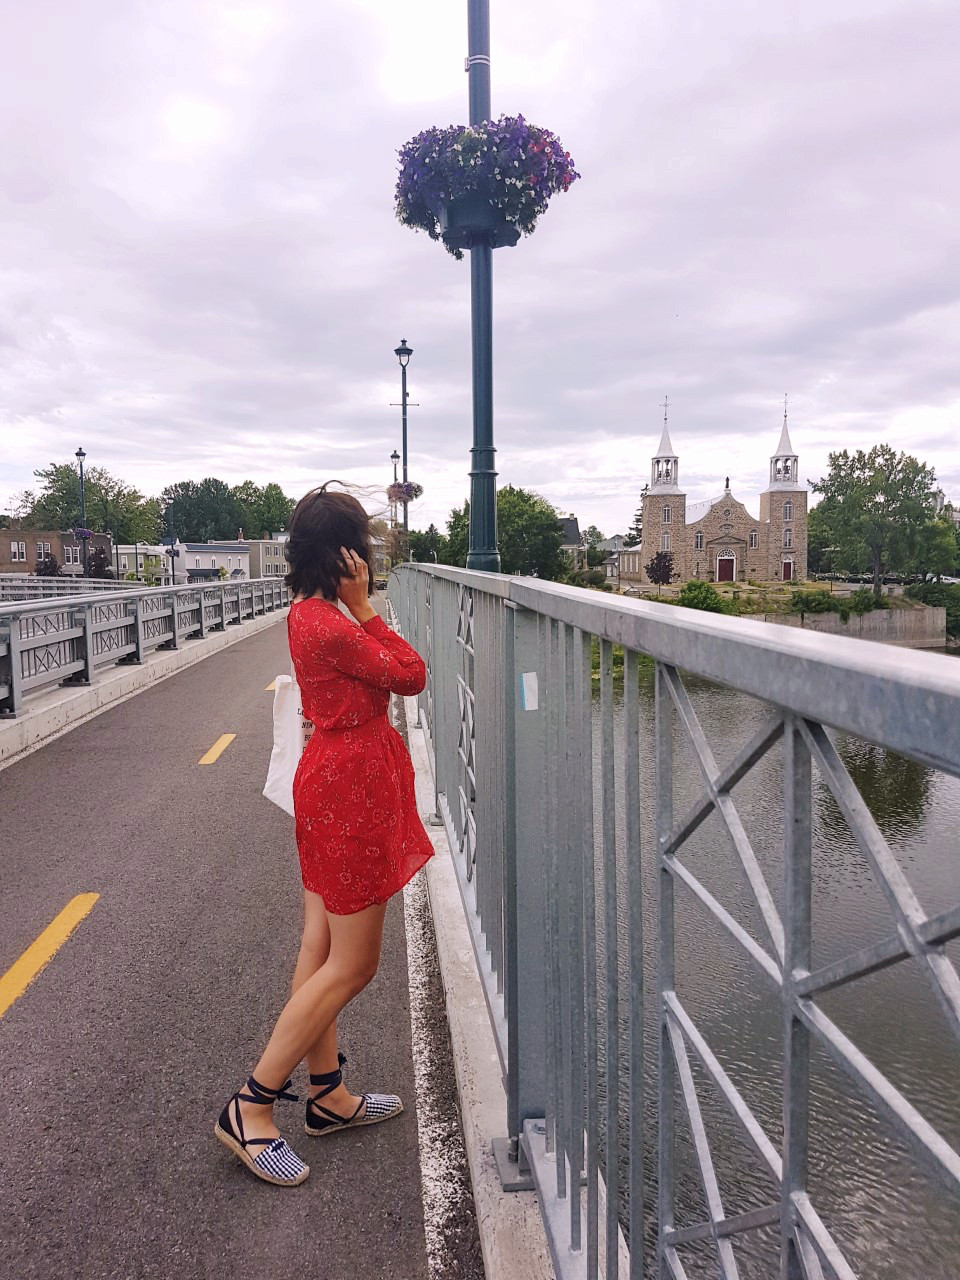 Dynamite Dress, Lifestyle, Summer, Street Style, Feminine, Dress, Sandals, Zara, Forever 21, Red Dress, Fashion, Beauty, Canadian Blogger, Montreal